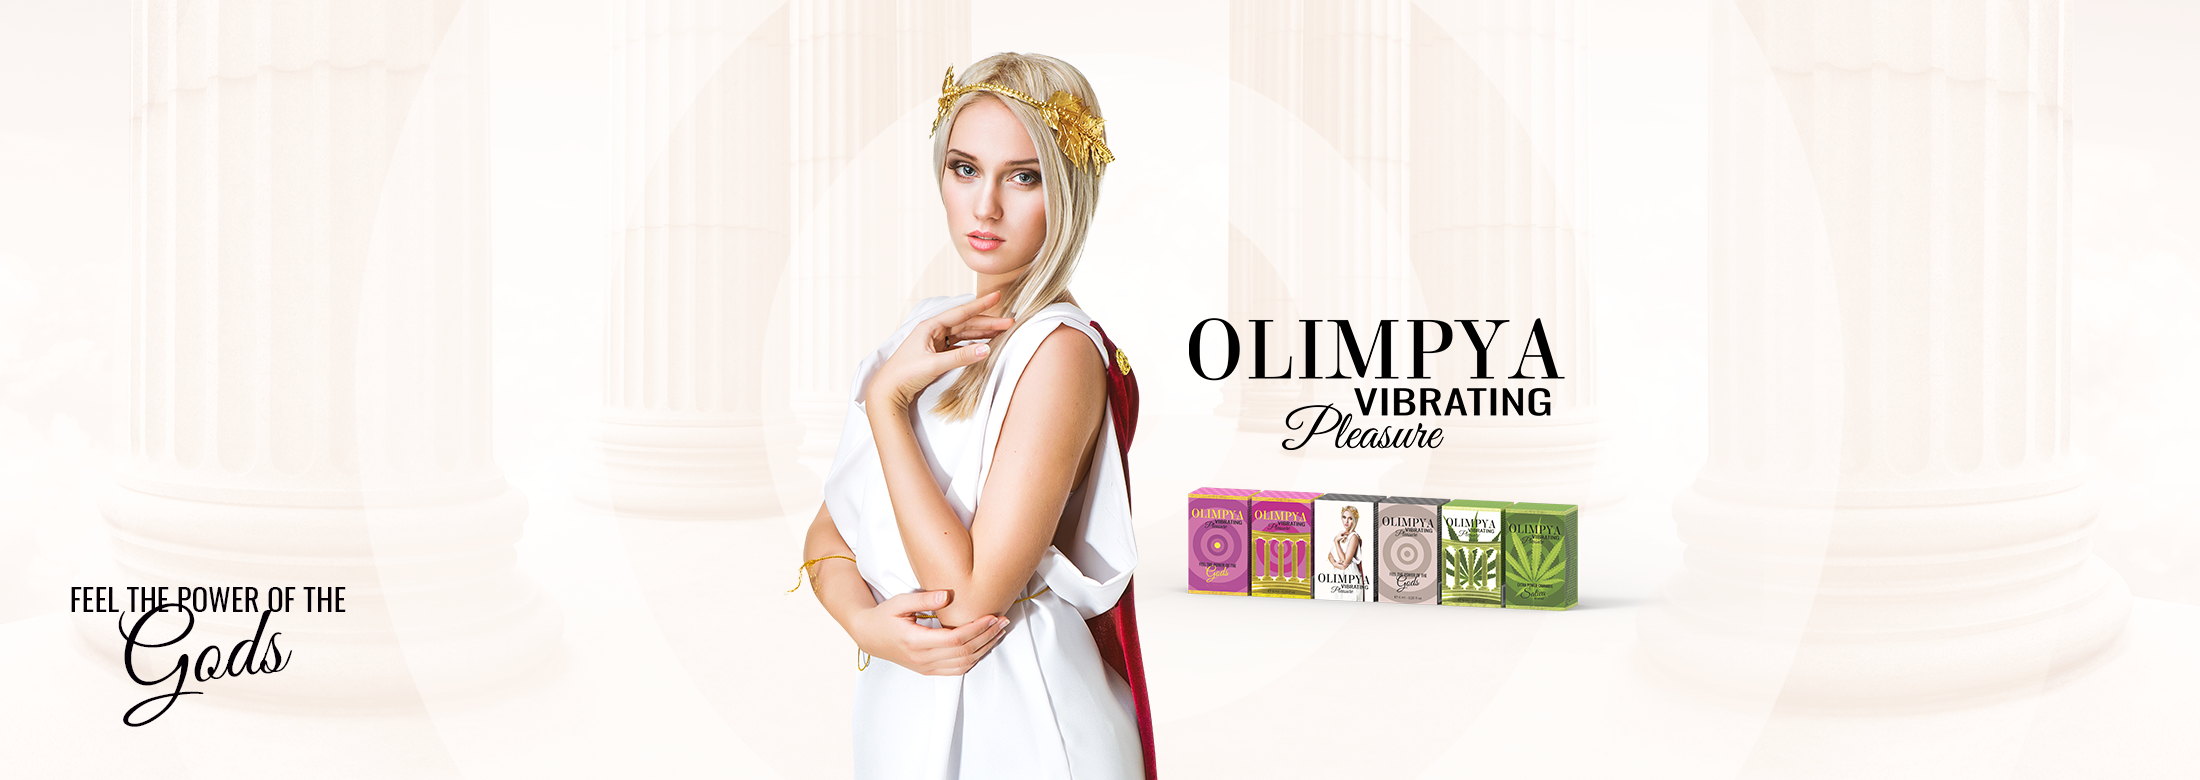 OLIMPYA VIBRATING PLEASURE POTENTE INTENSIFICADOR